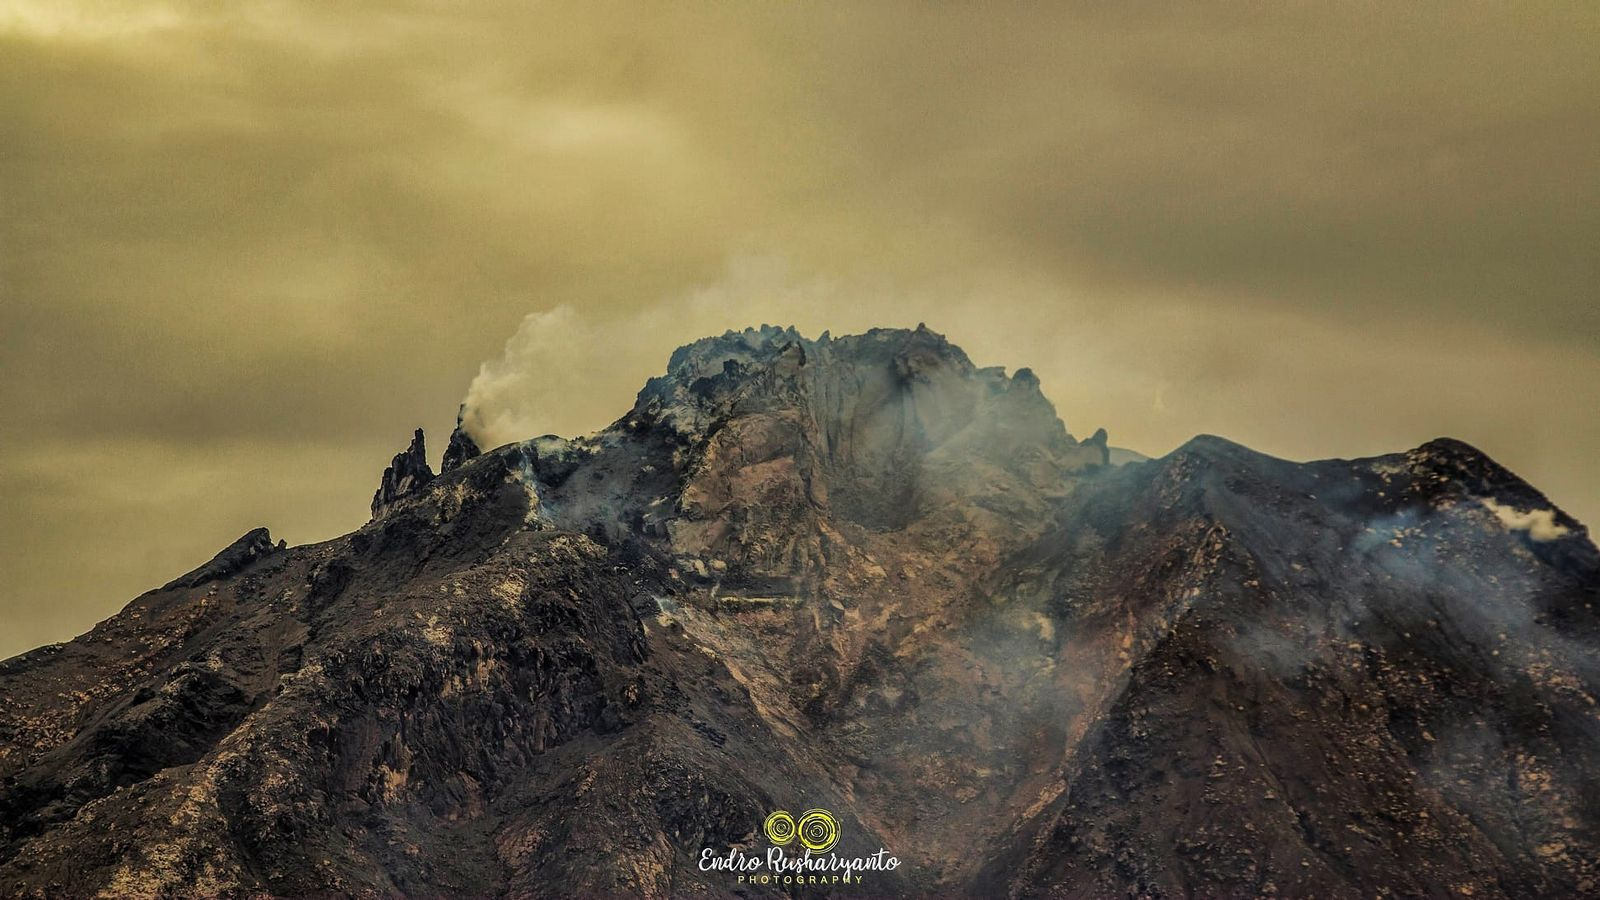 Sinabung - the summit on 06.05.2021 - photo Endro Rusharyanto - one click to enlarge